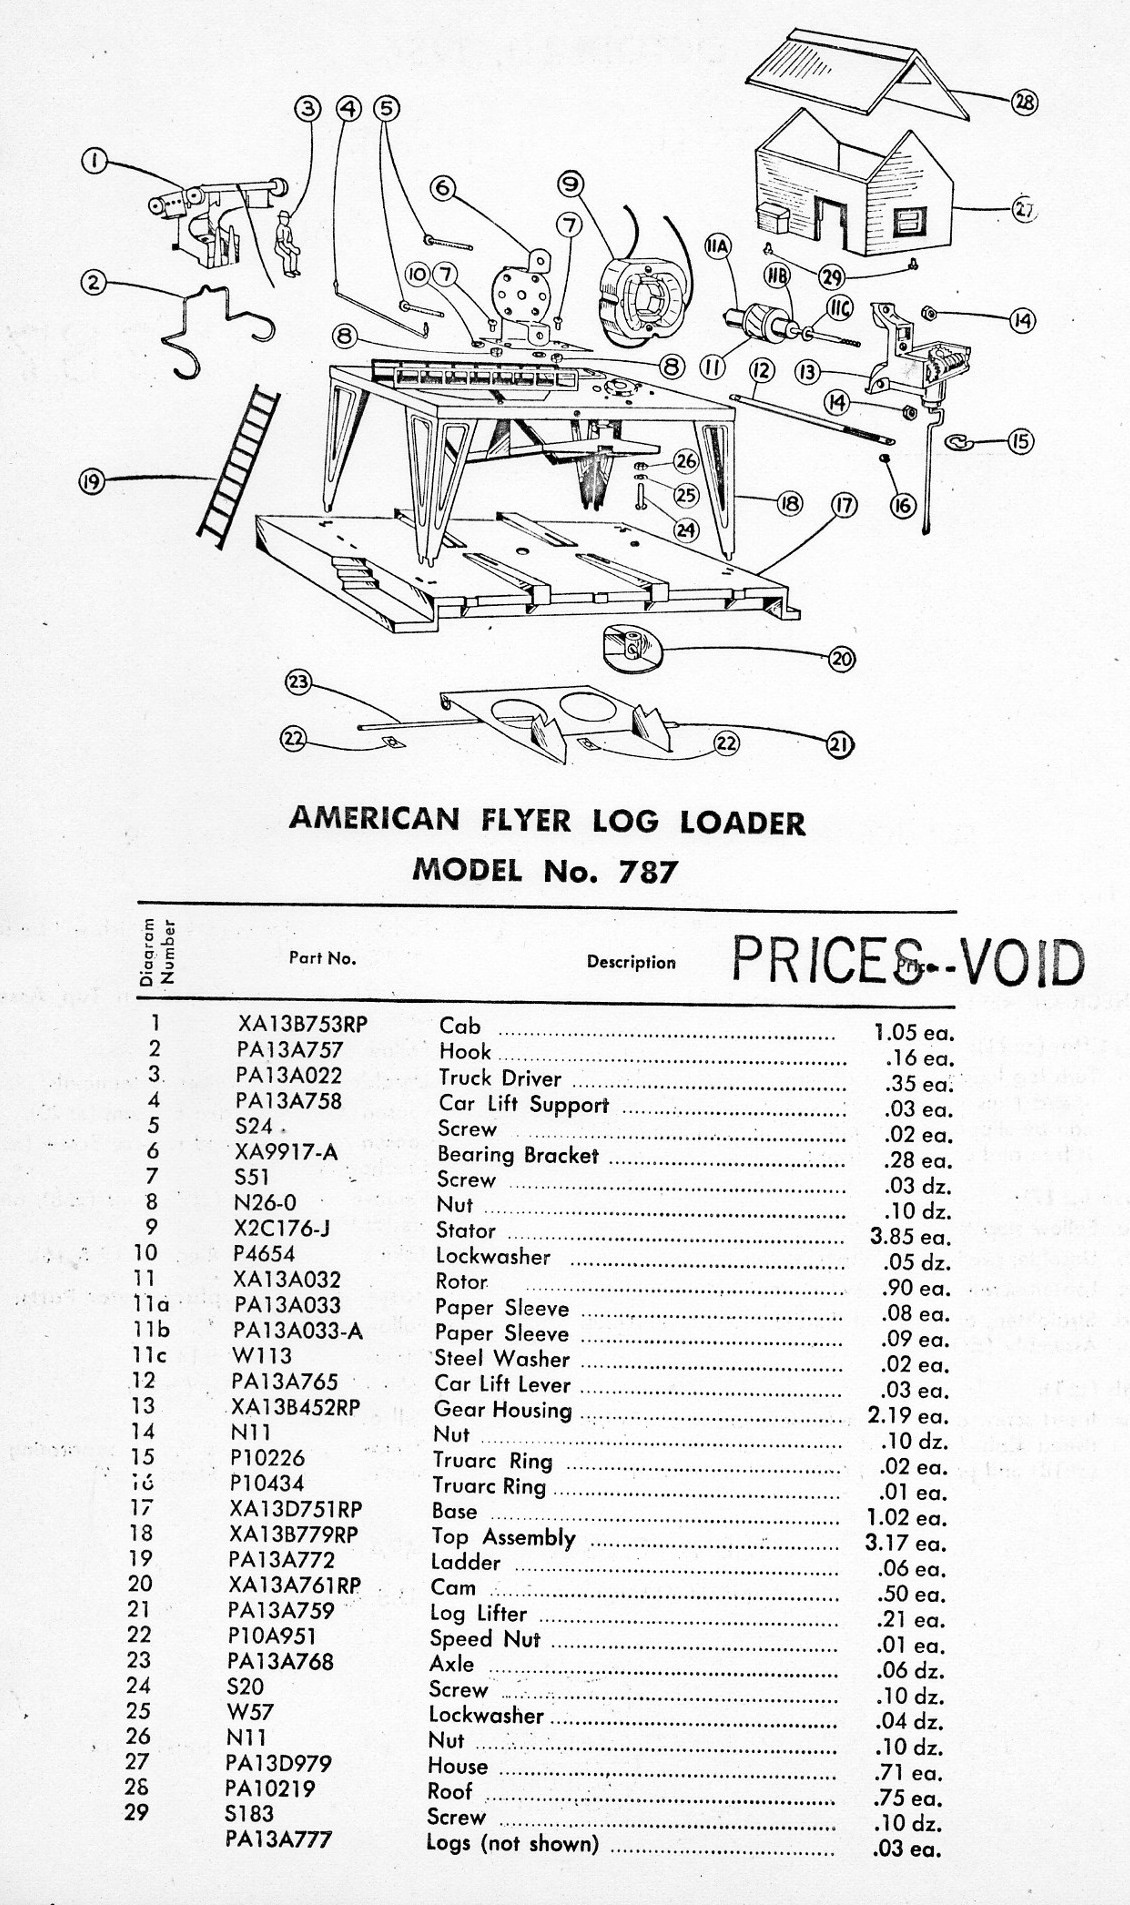 American Flyer Log Loader No. 787 Parts List and Diagram - Page 2